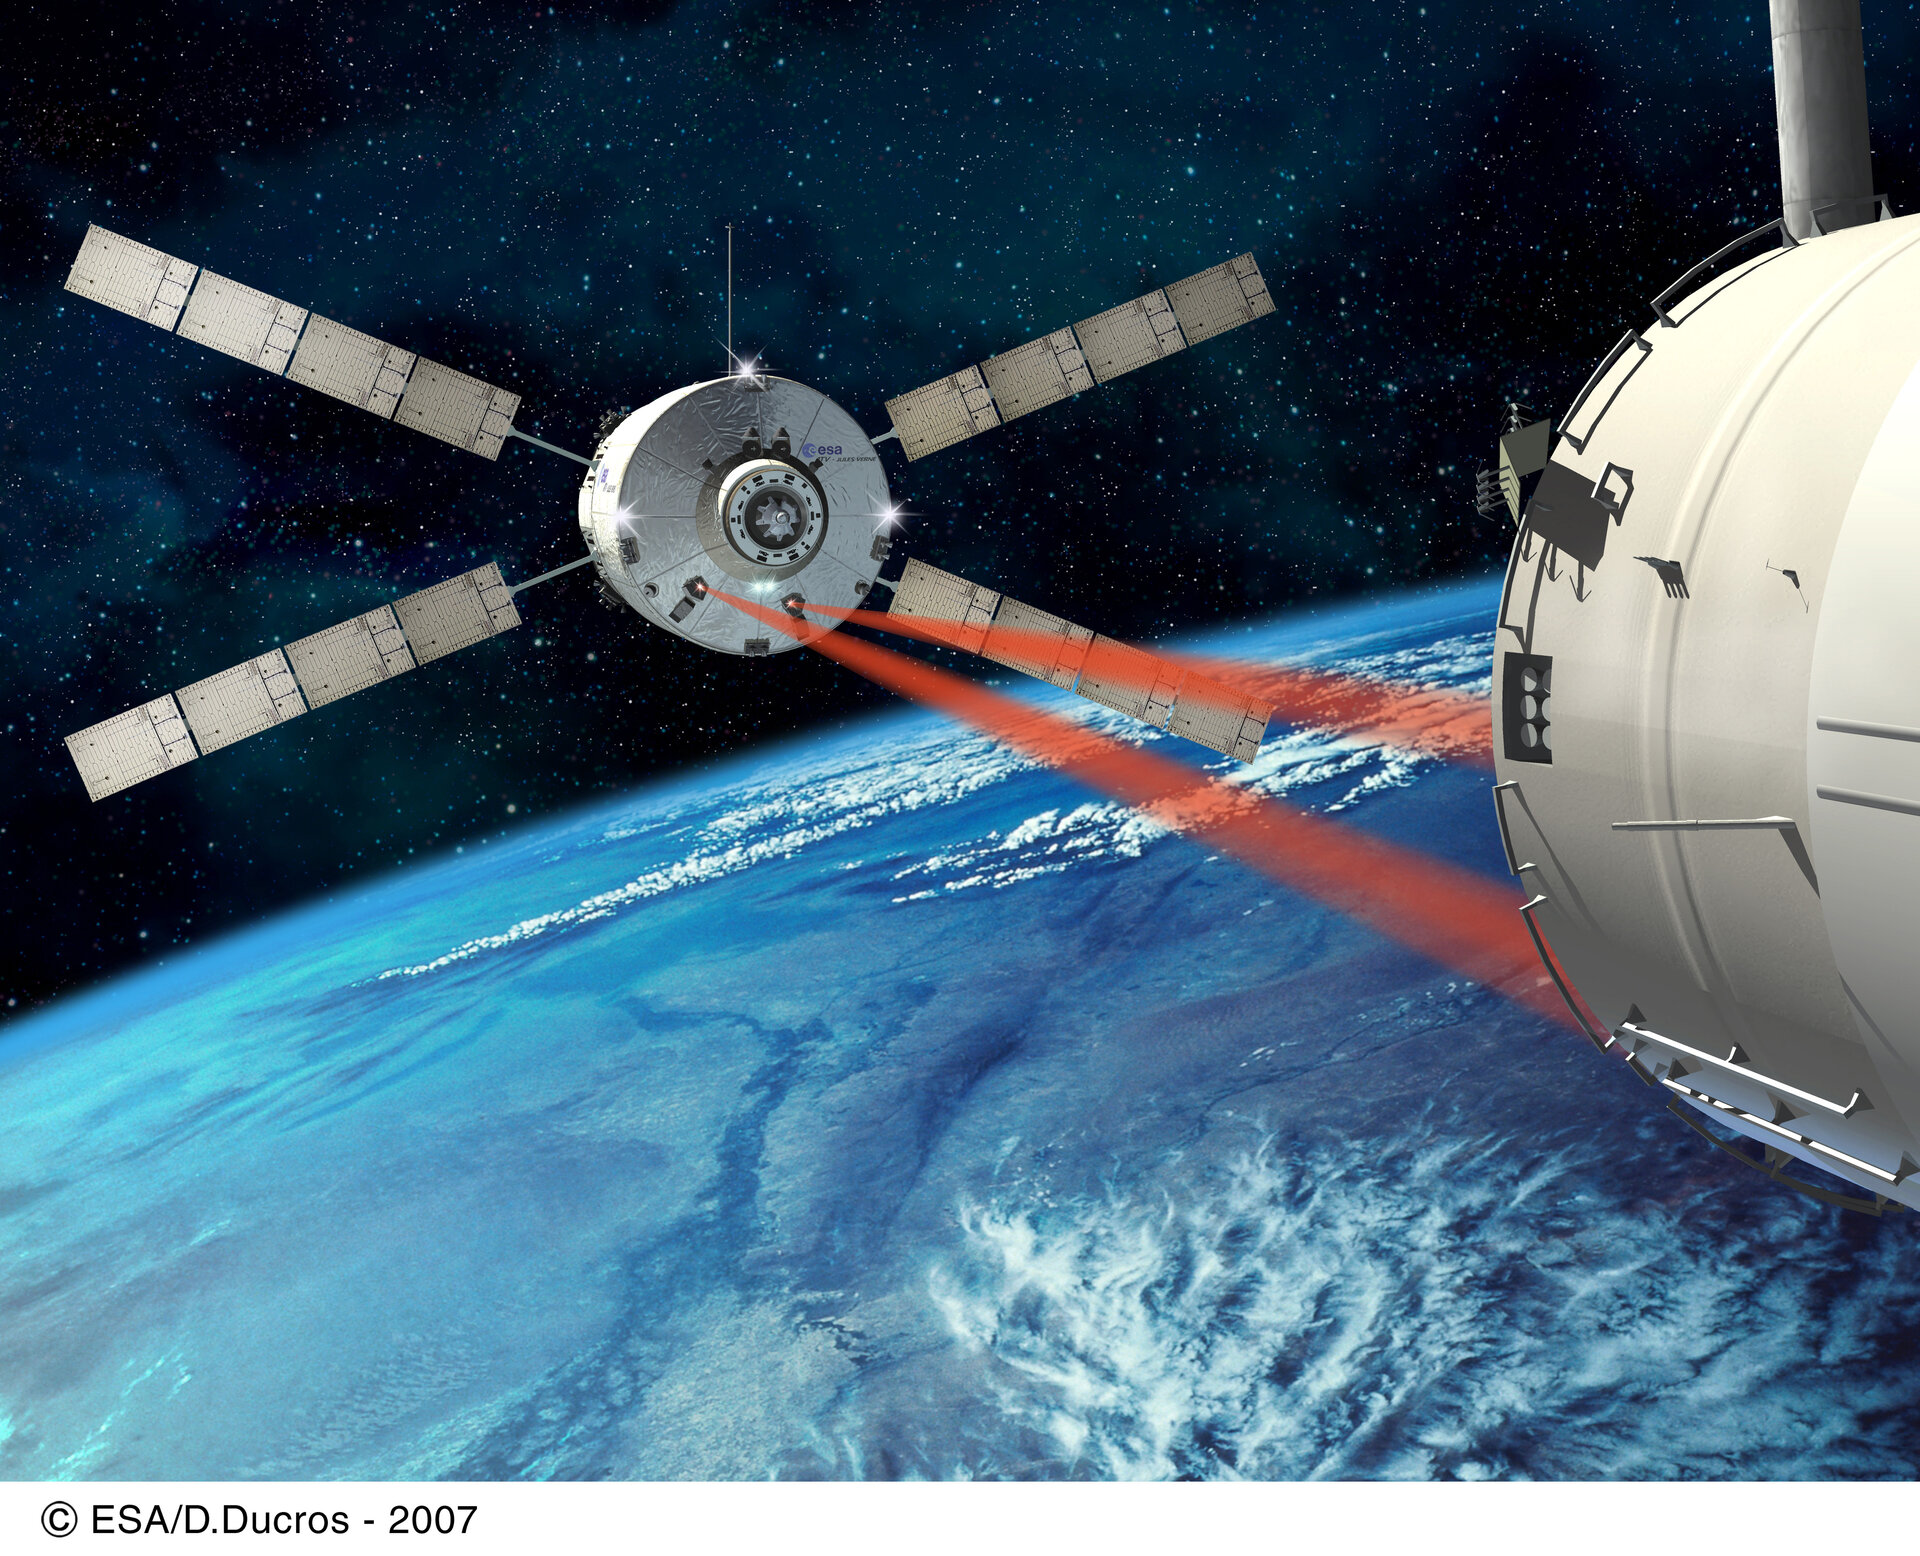 Artist's impression of ATV approaching the ISS for a fully automated docking